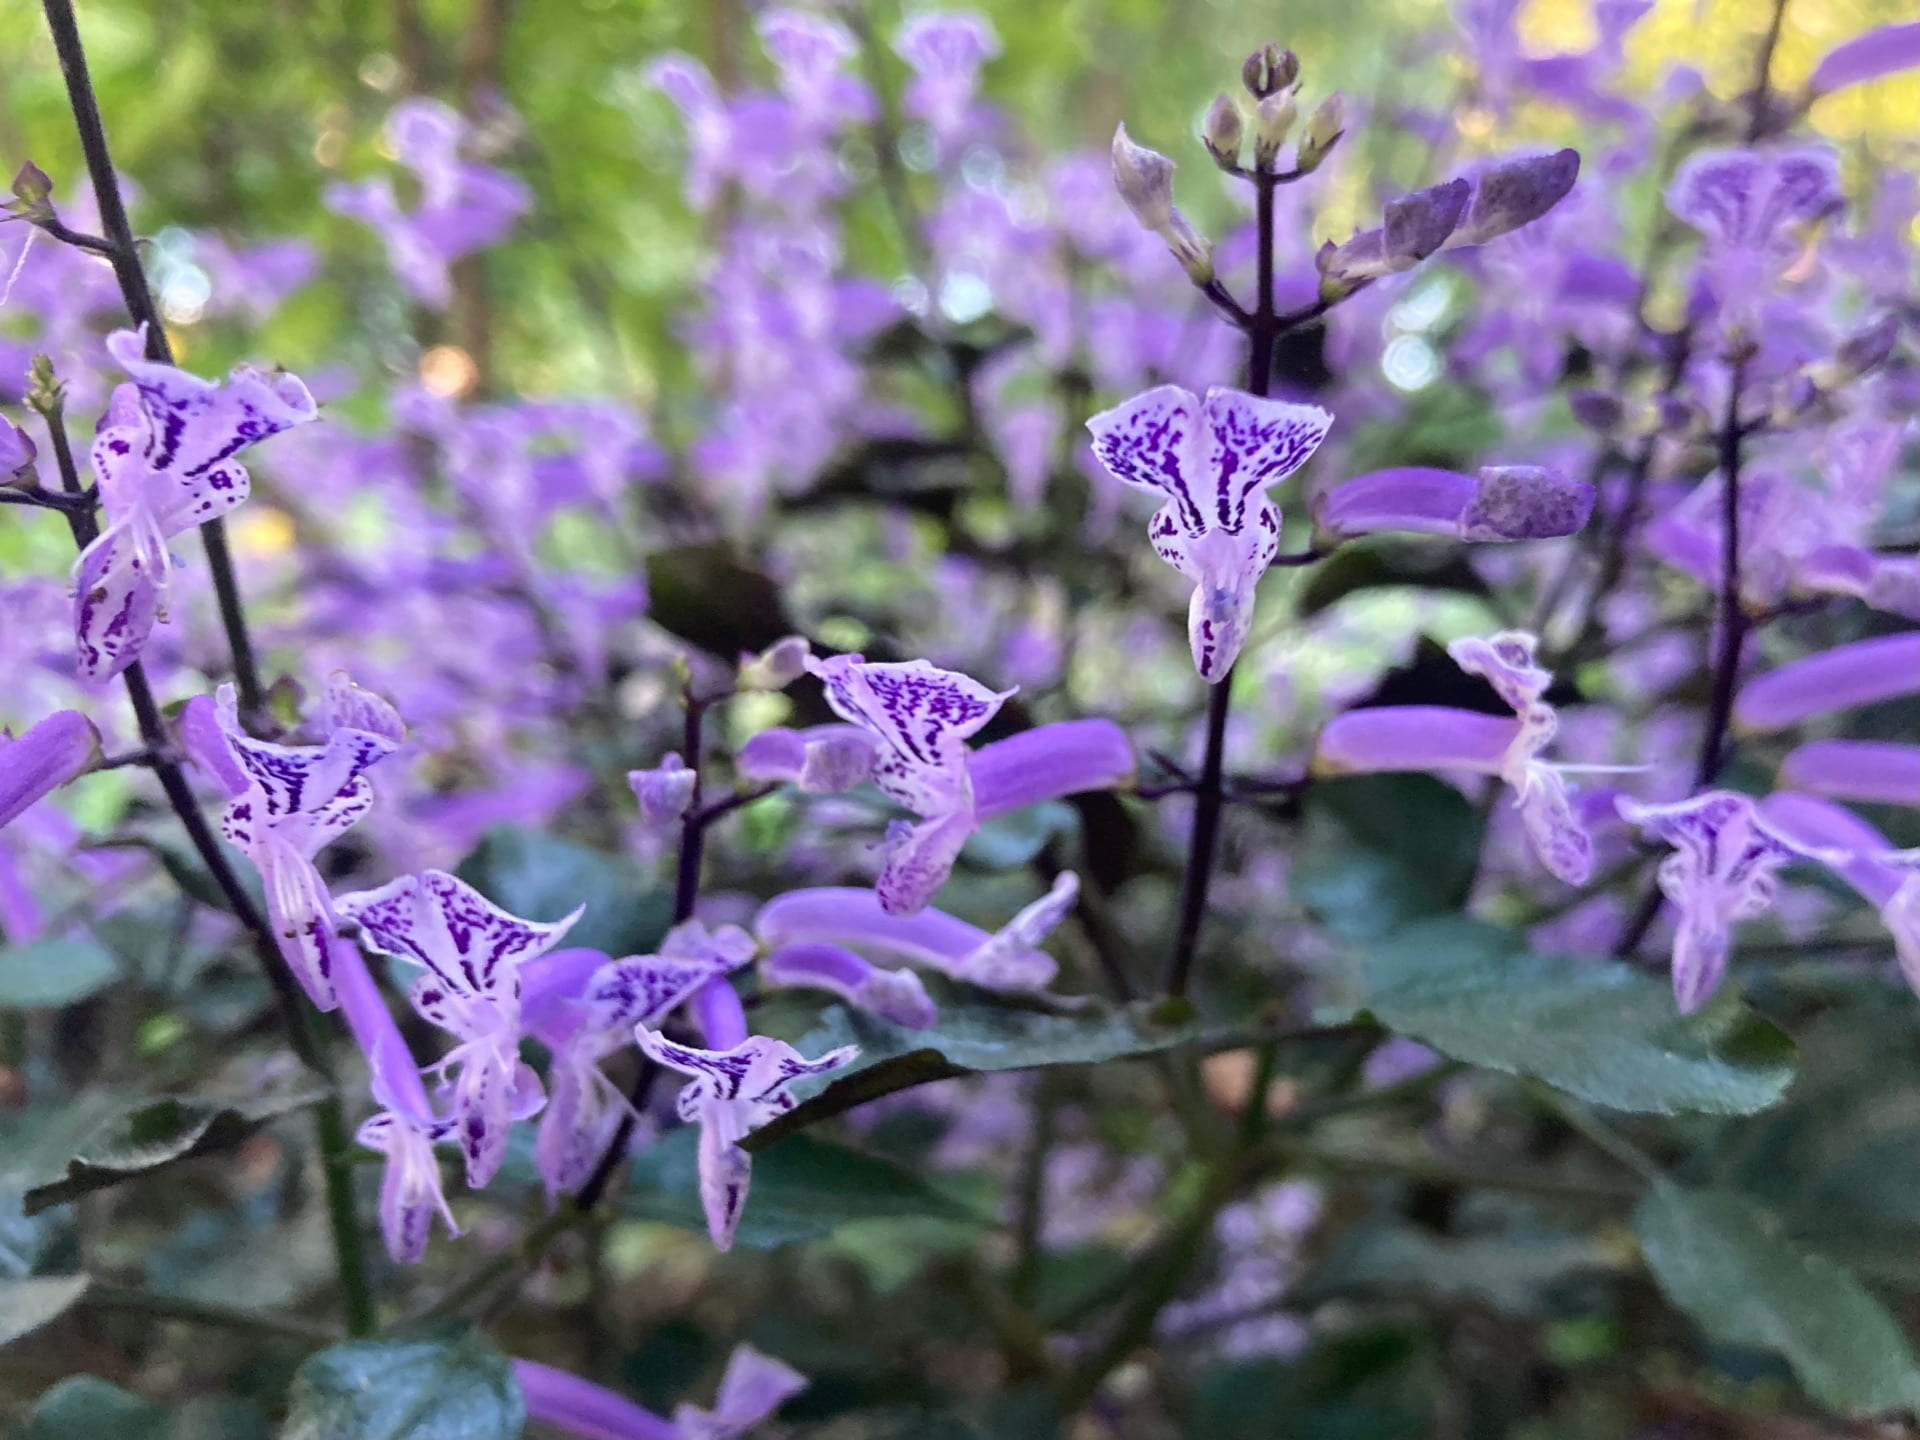 Plectranthus 'Mona Lavender' while not hardy, is easily propagated via cuttings every fall for the next year.